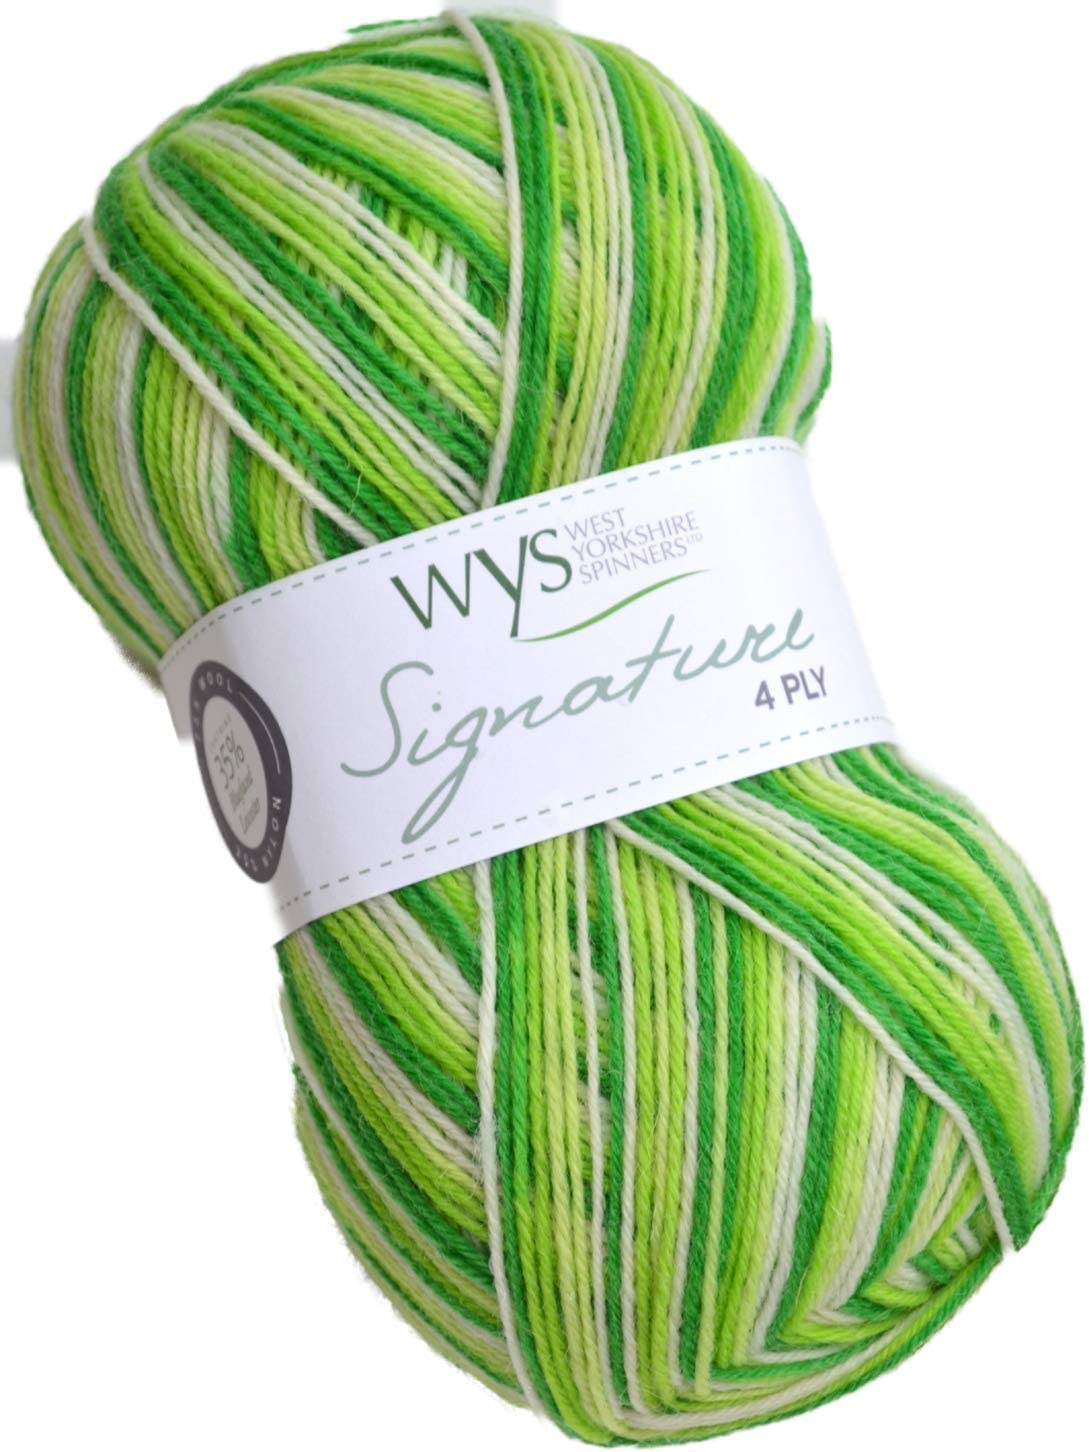 630 West Yorkshire Spinners Signature 4 Ply Yarn Wool 100g Nutmeg